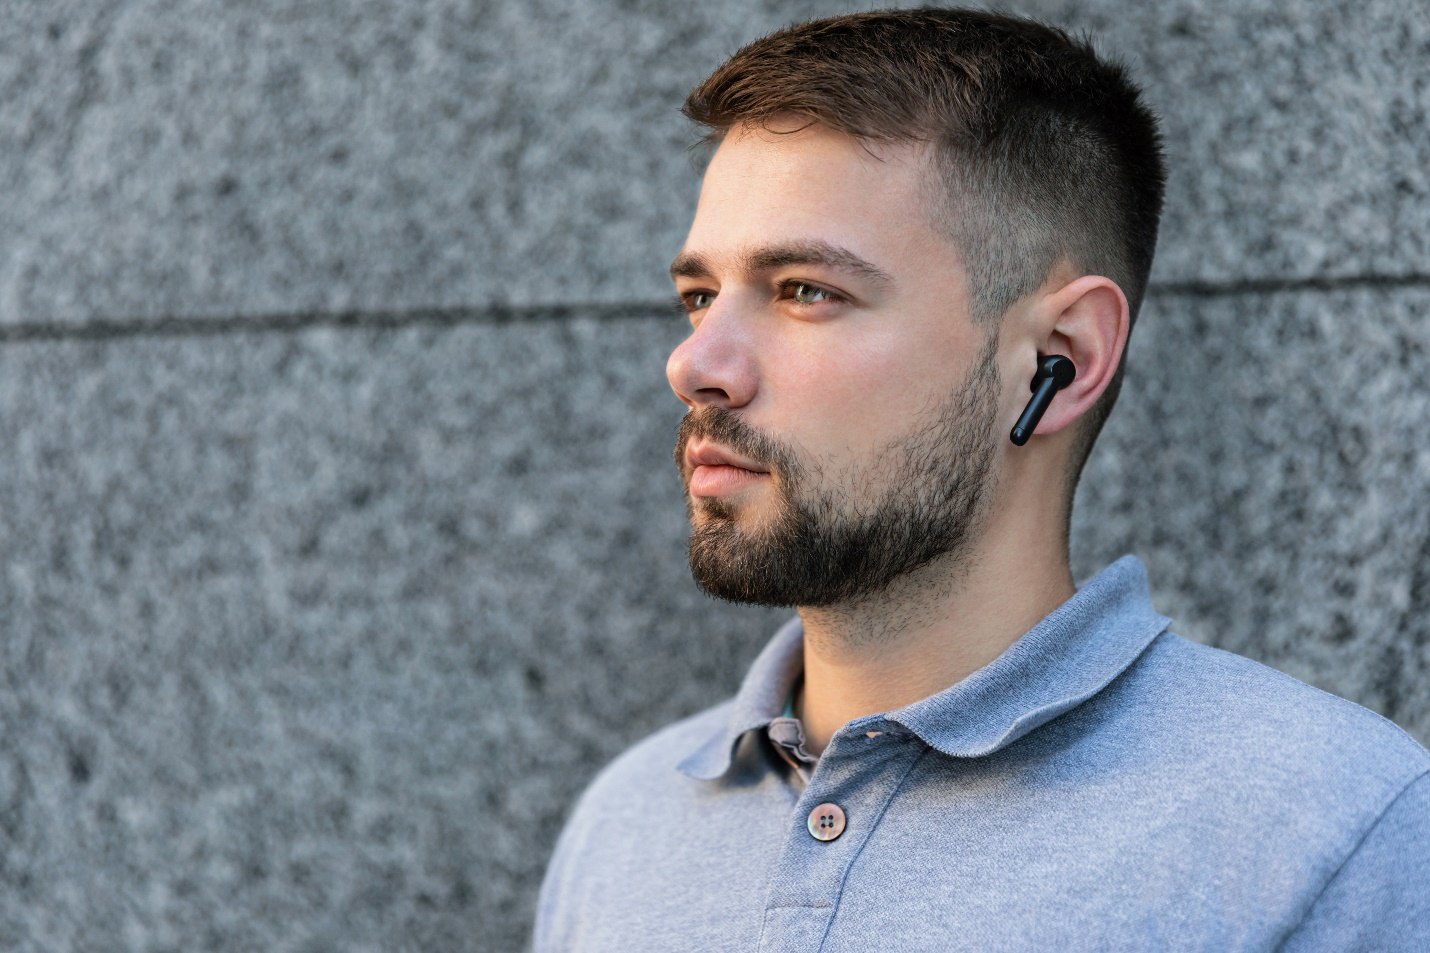 A person with a beard talking on a cell phone  Description automatically generated with medium confidence